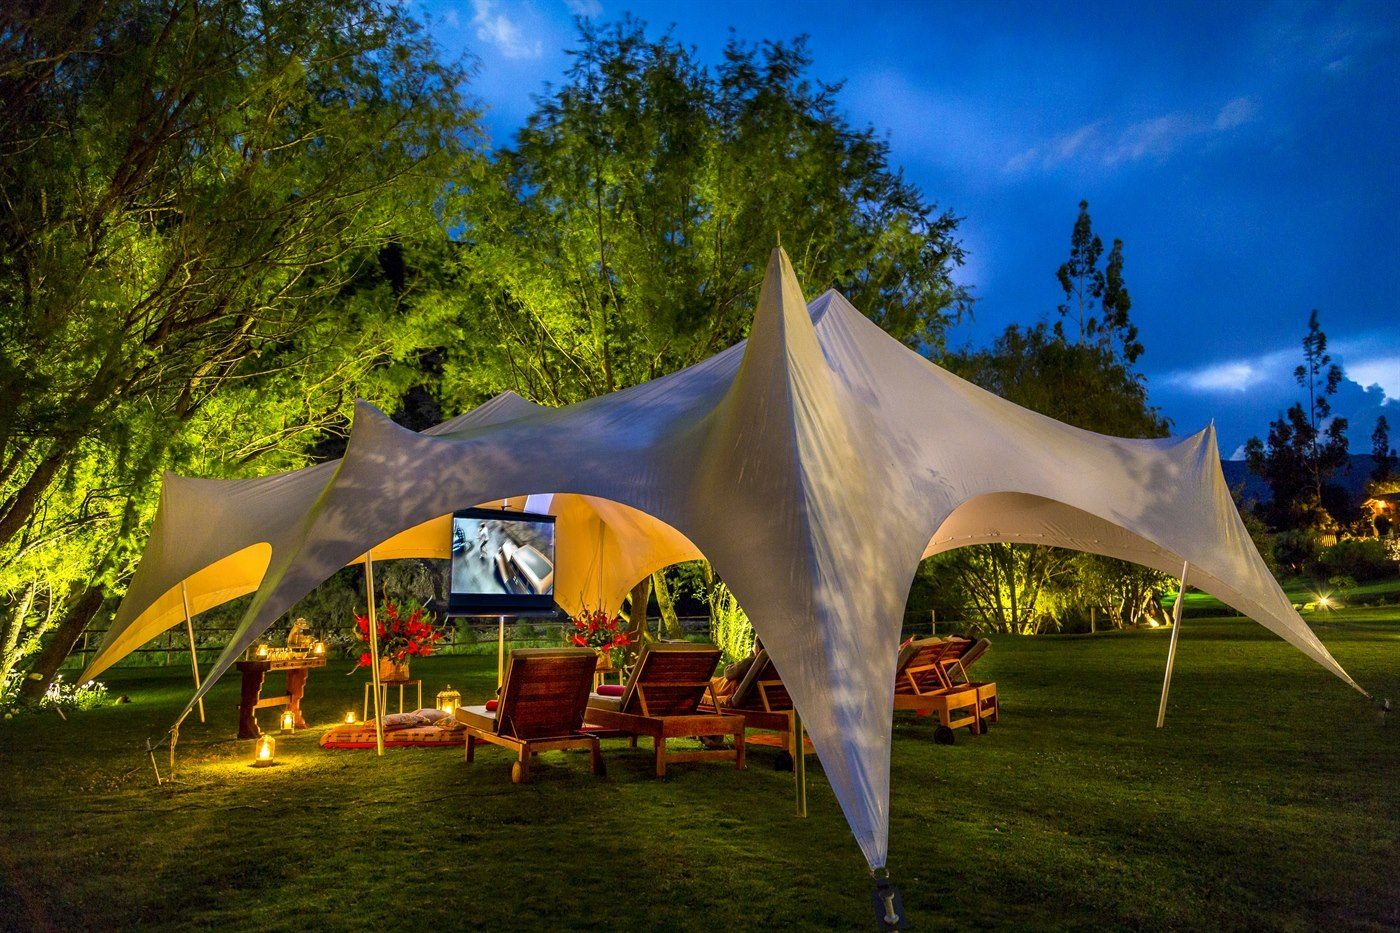 Outdoor Cinema, Belmond Hotel Rio Sagrado